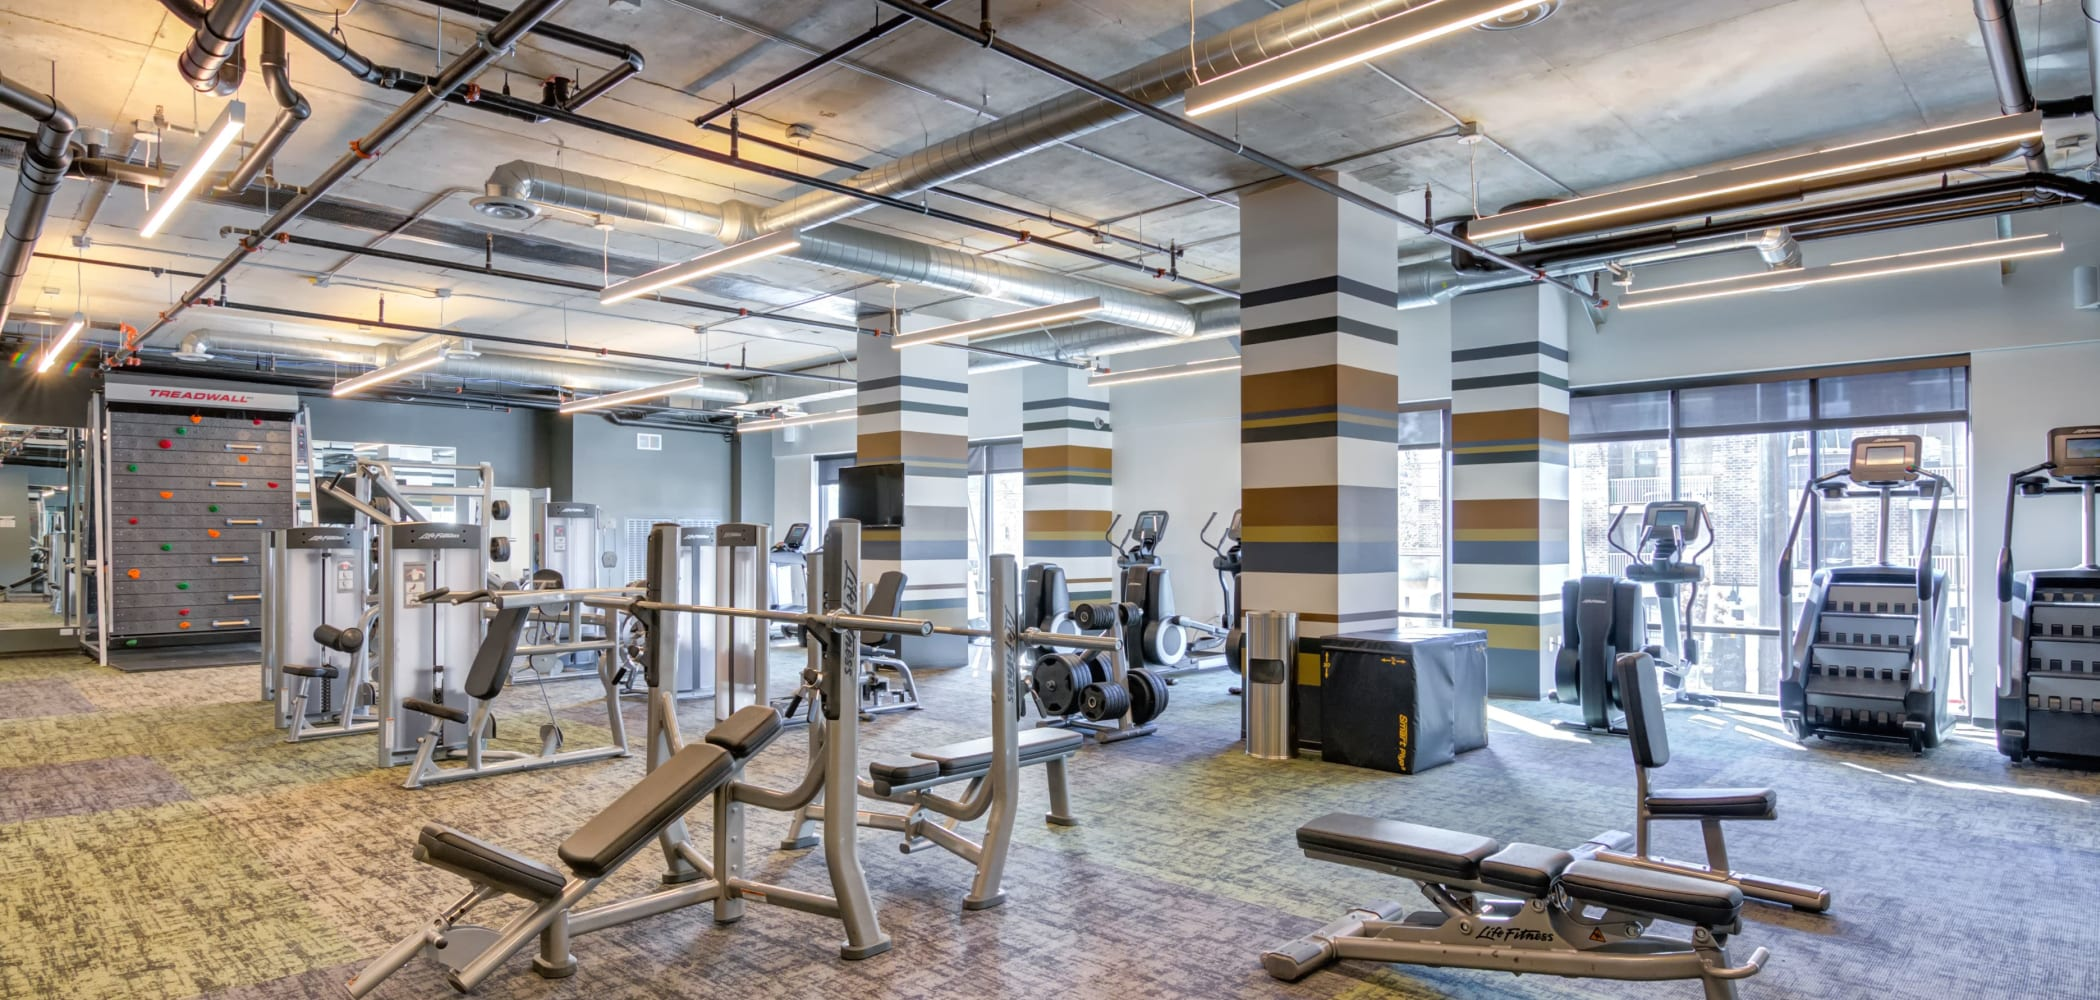 Fitness center for residents at The Link Minneapolis in Minneapolis, Minnesota